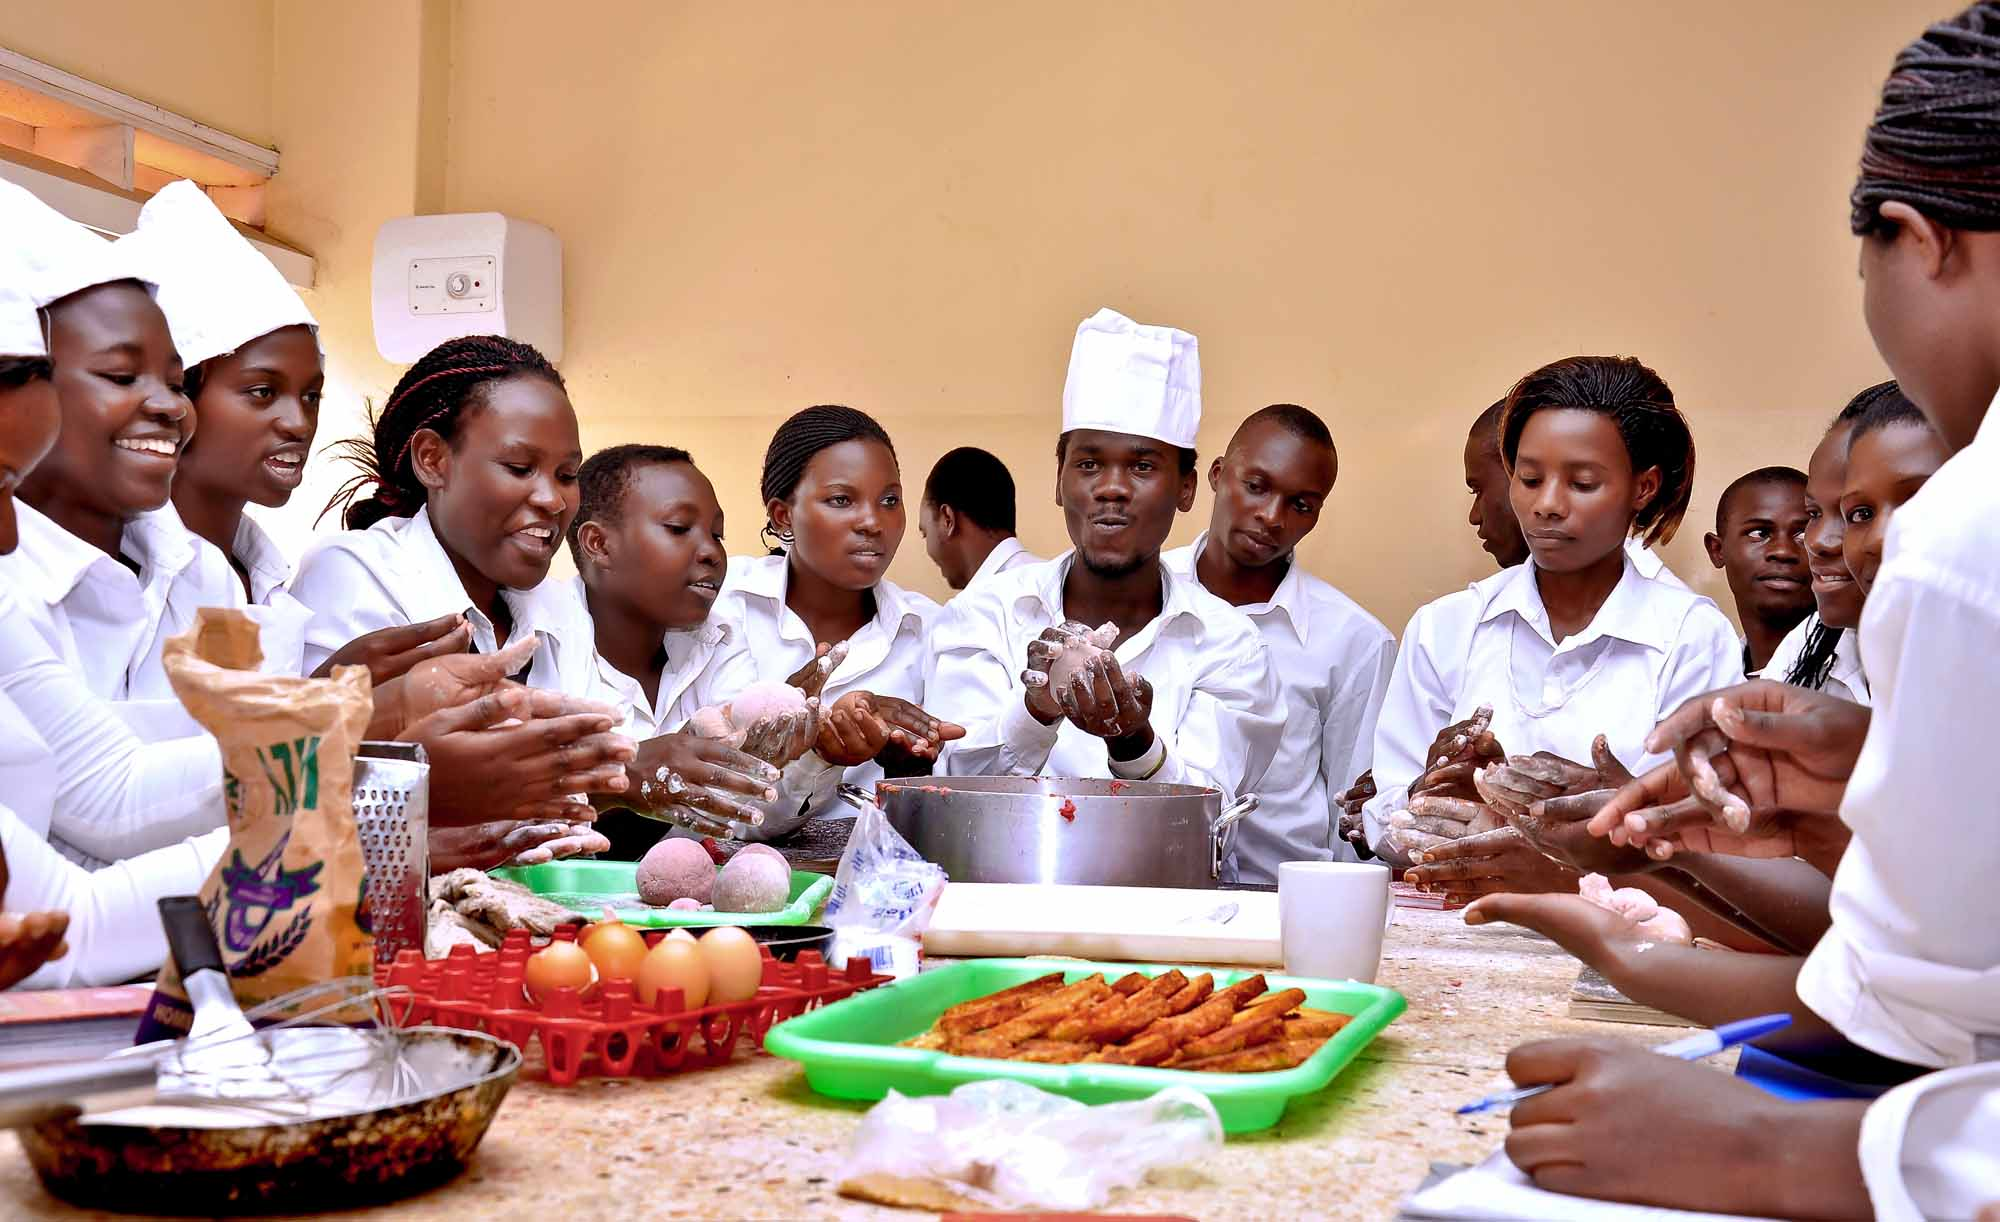 Hotel & Institutional Catering - Baking Session